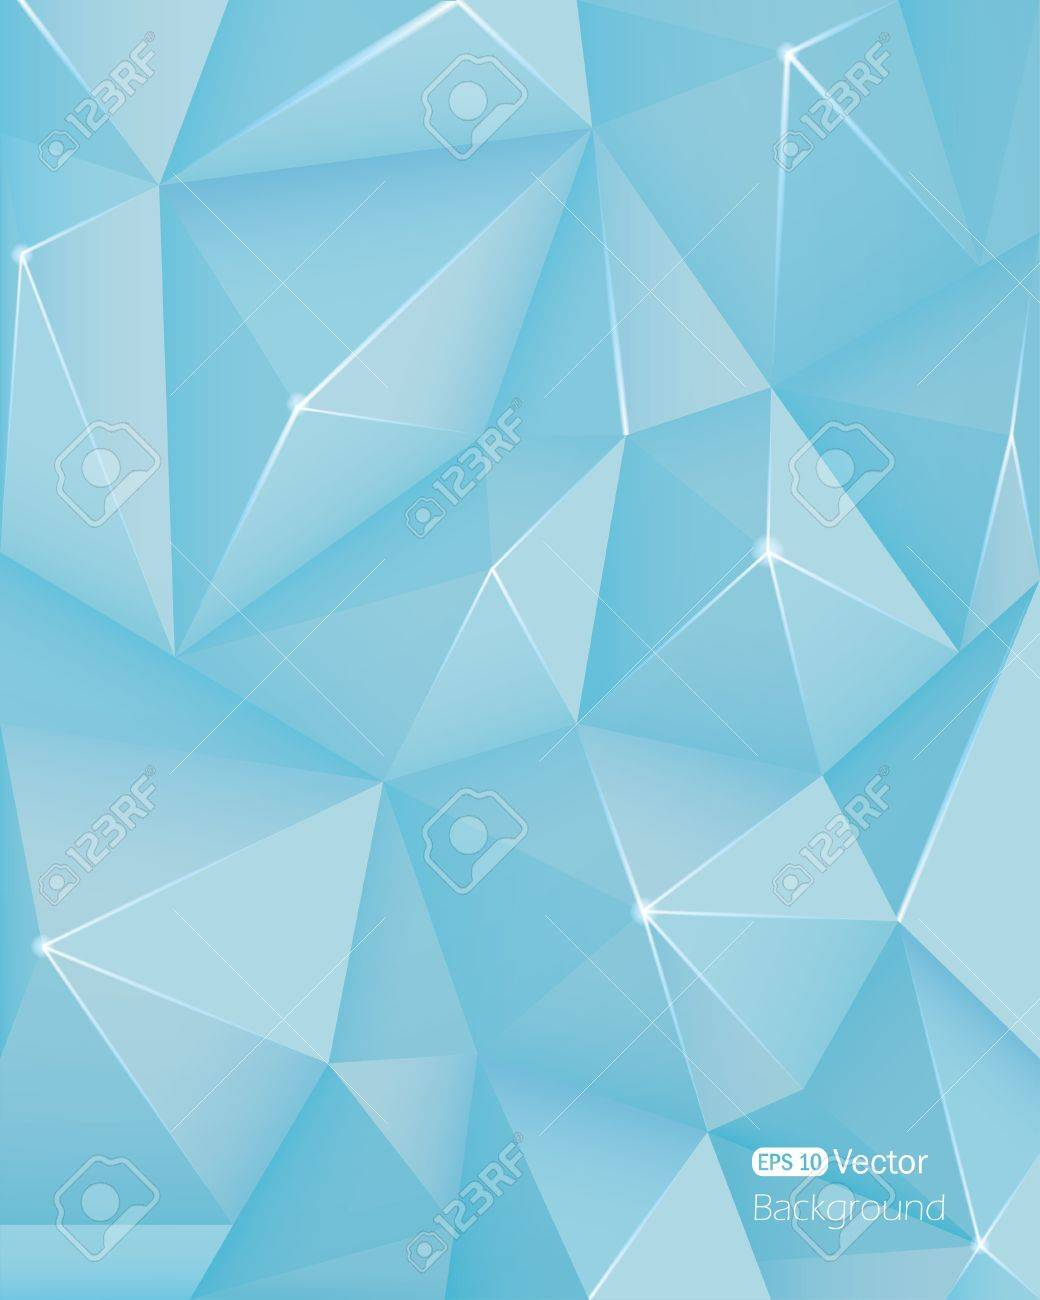 Abstract Light Blue Triangle Background